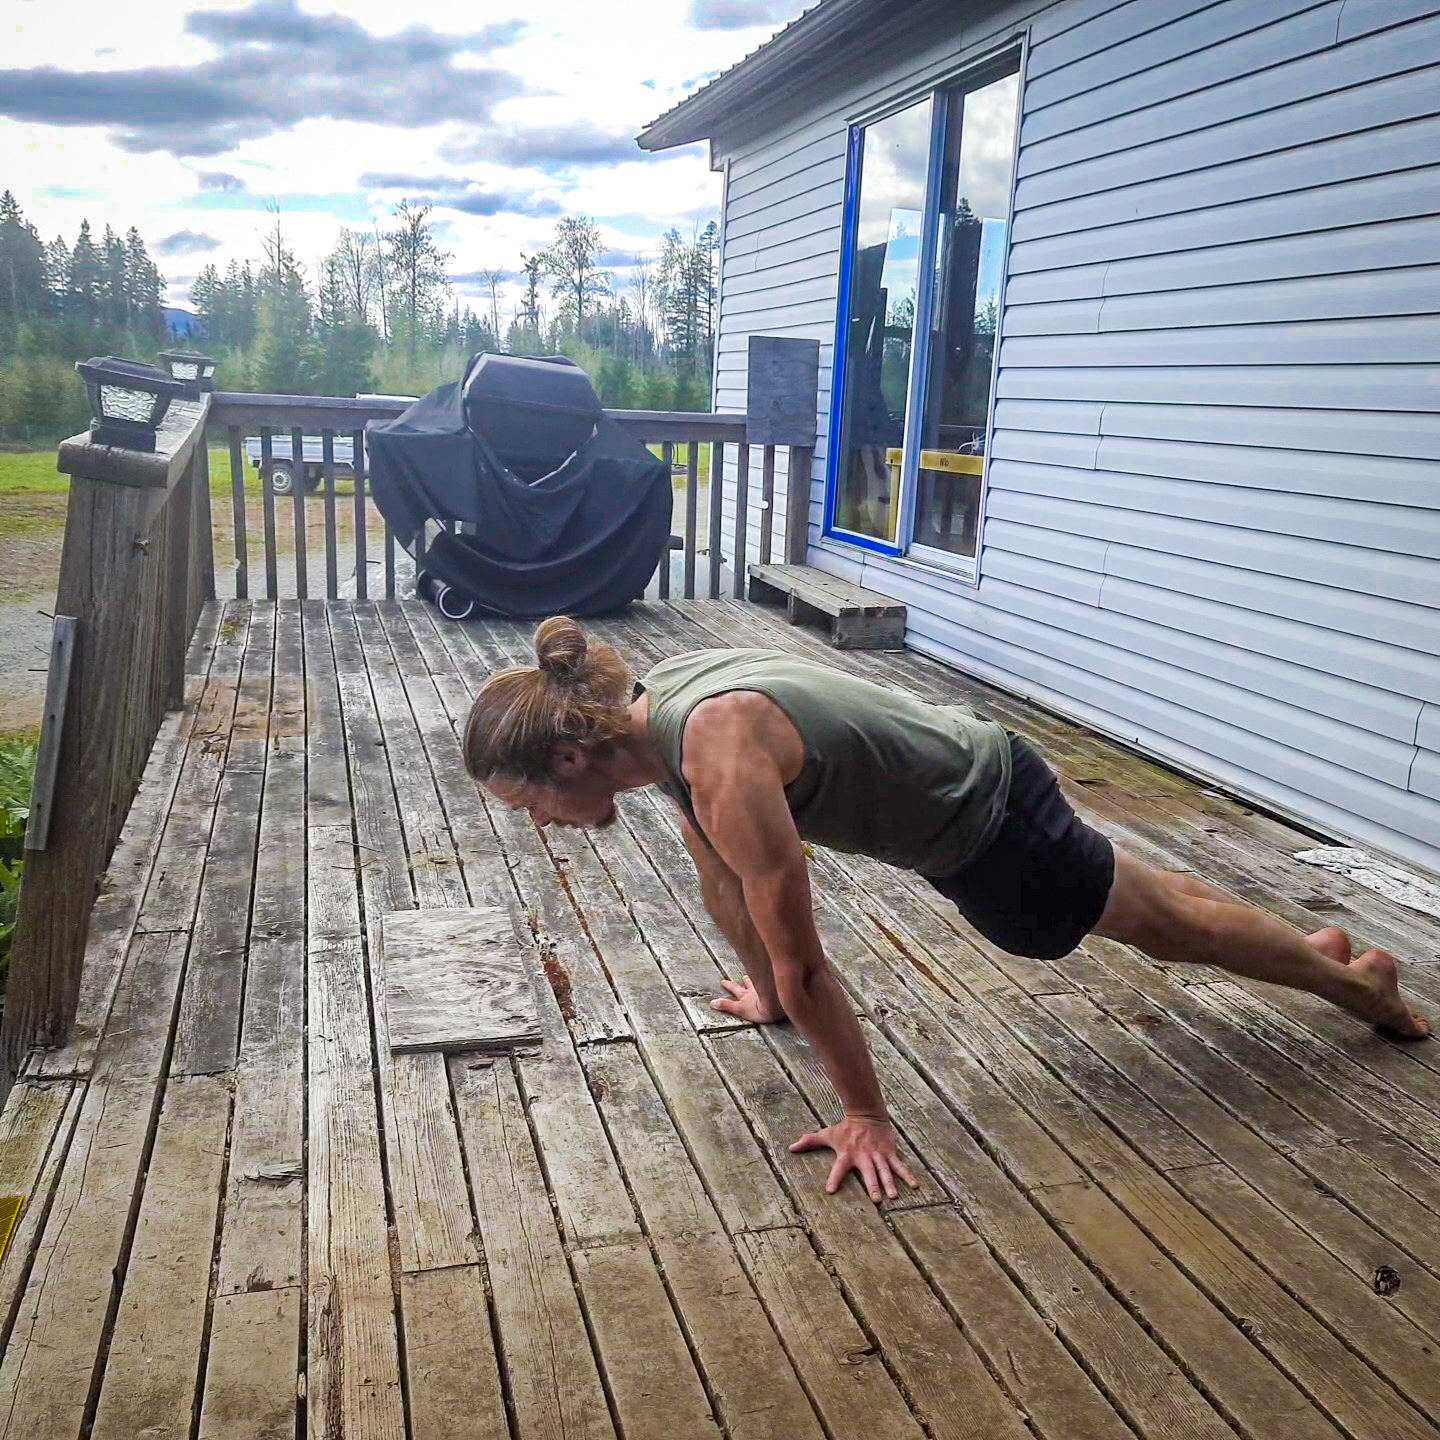 This image shows me performing planche lean, which is a straight arm strength movement.